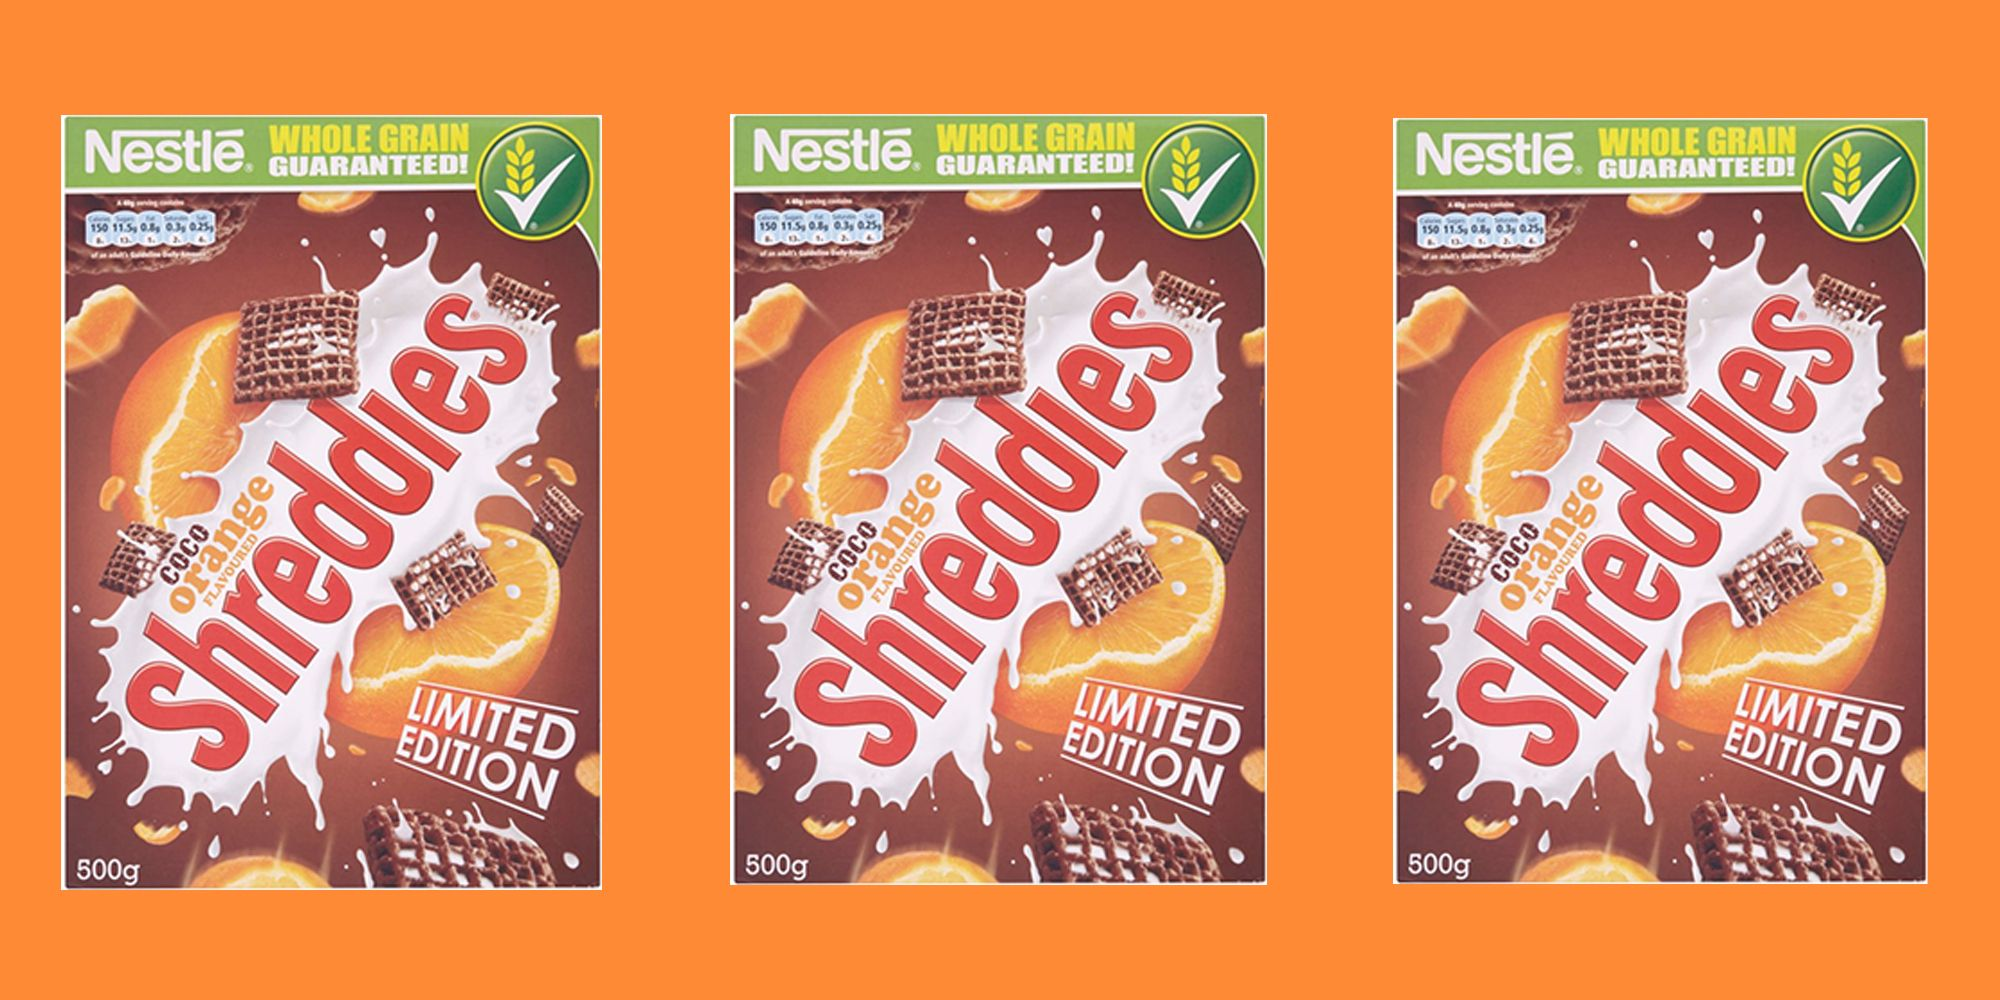 Chocolate Orange Shreddies Are Back To Make Your Morning 100 Times Better